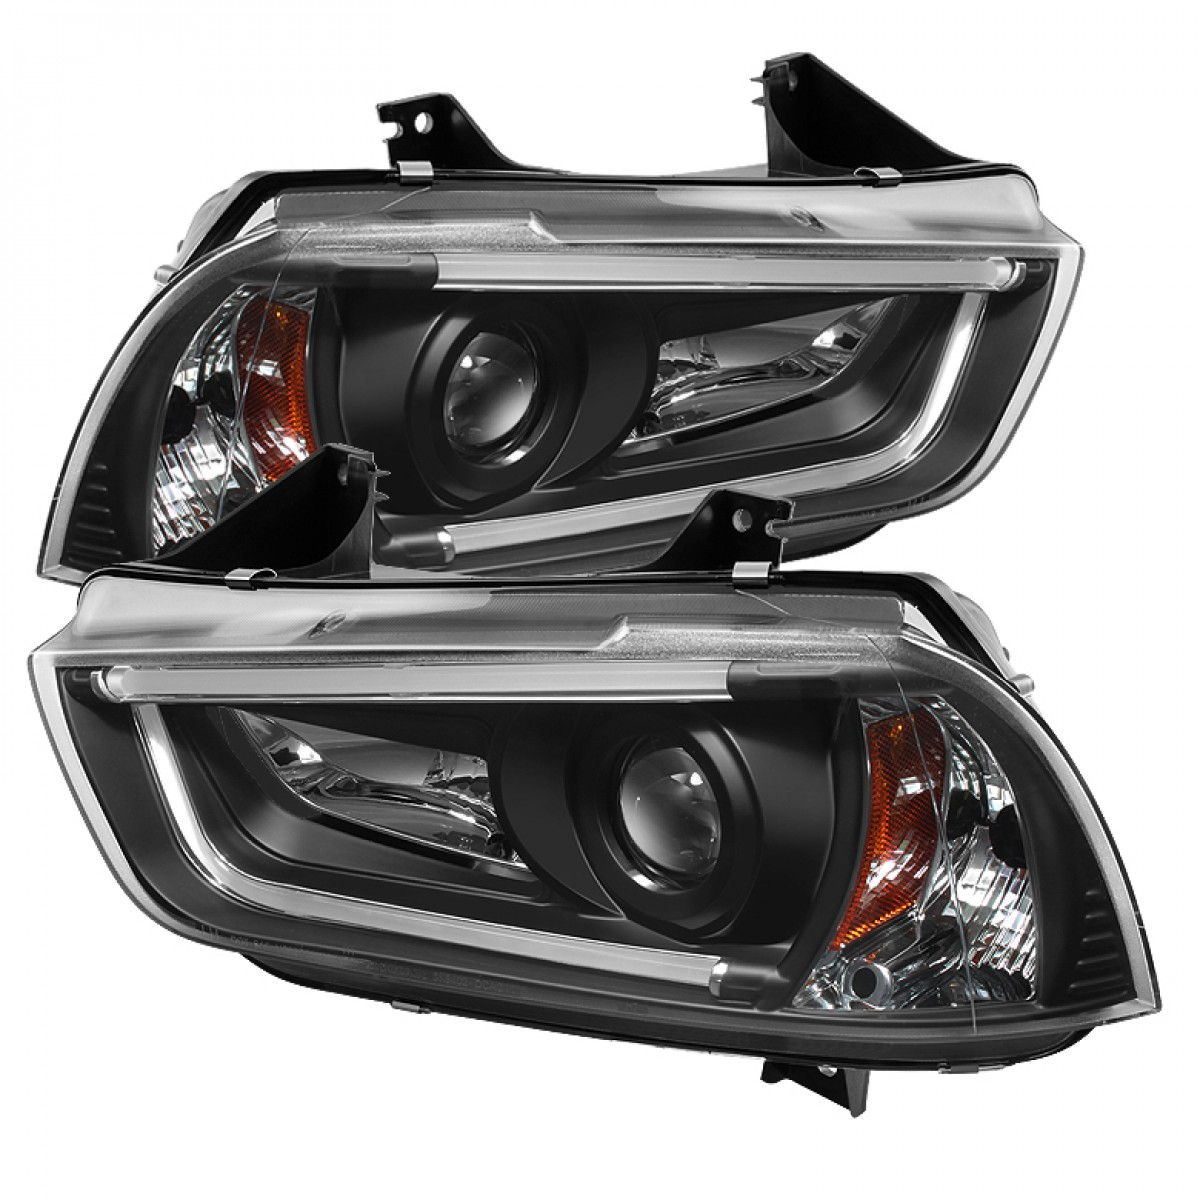 2014 durango projector headlights autos post. Black Bedroom Furniture Sets. Home Design Ideas